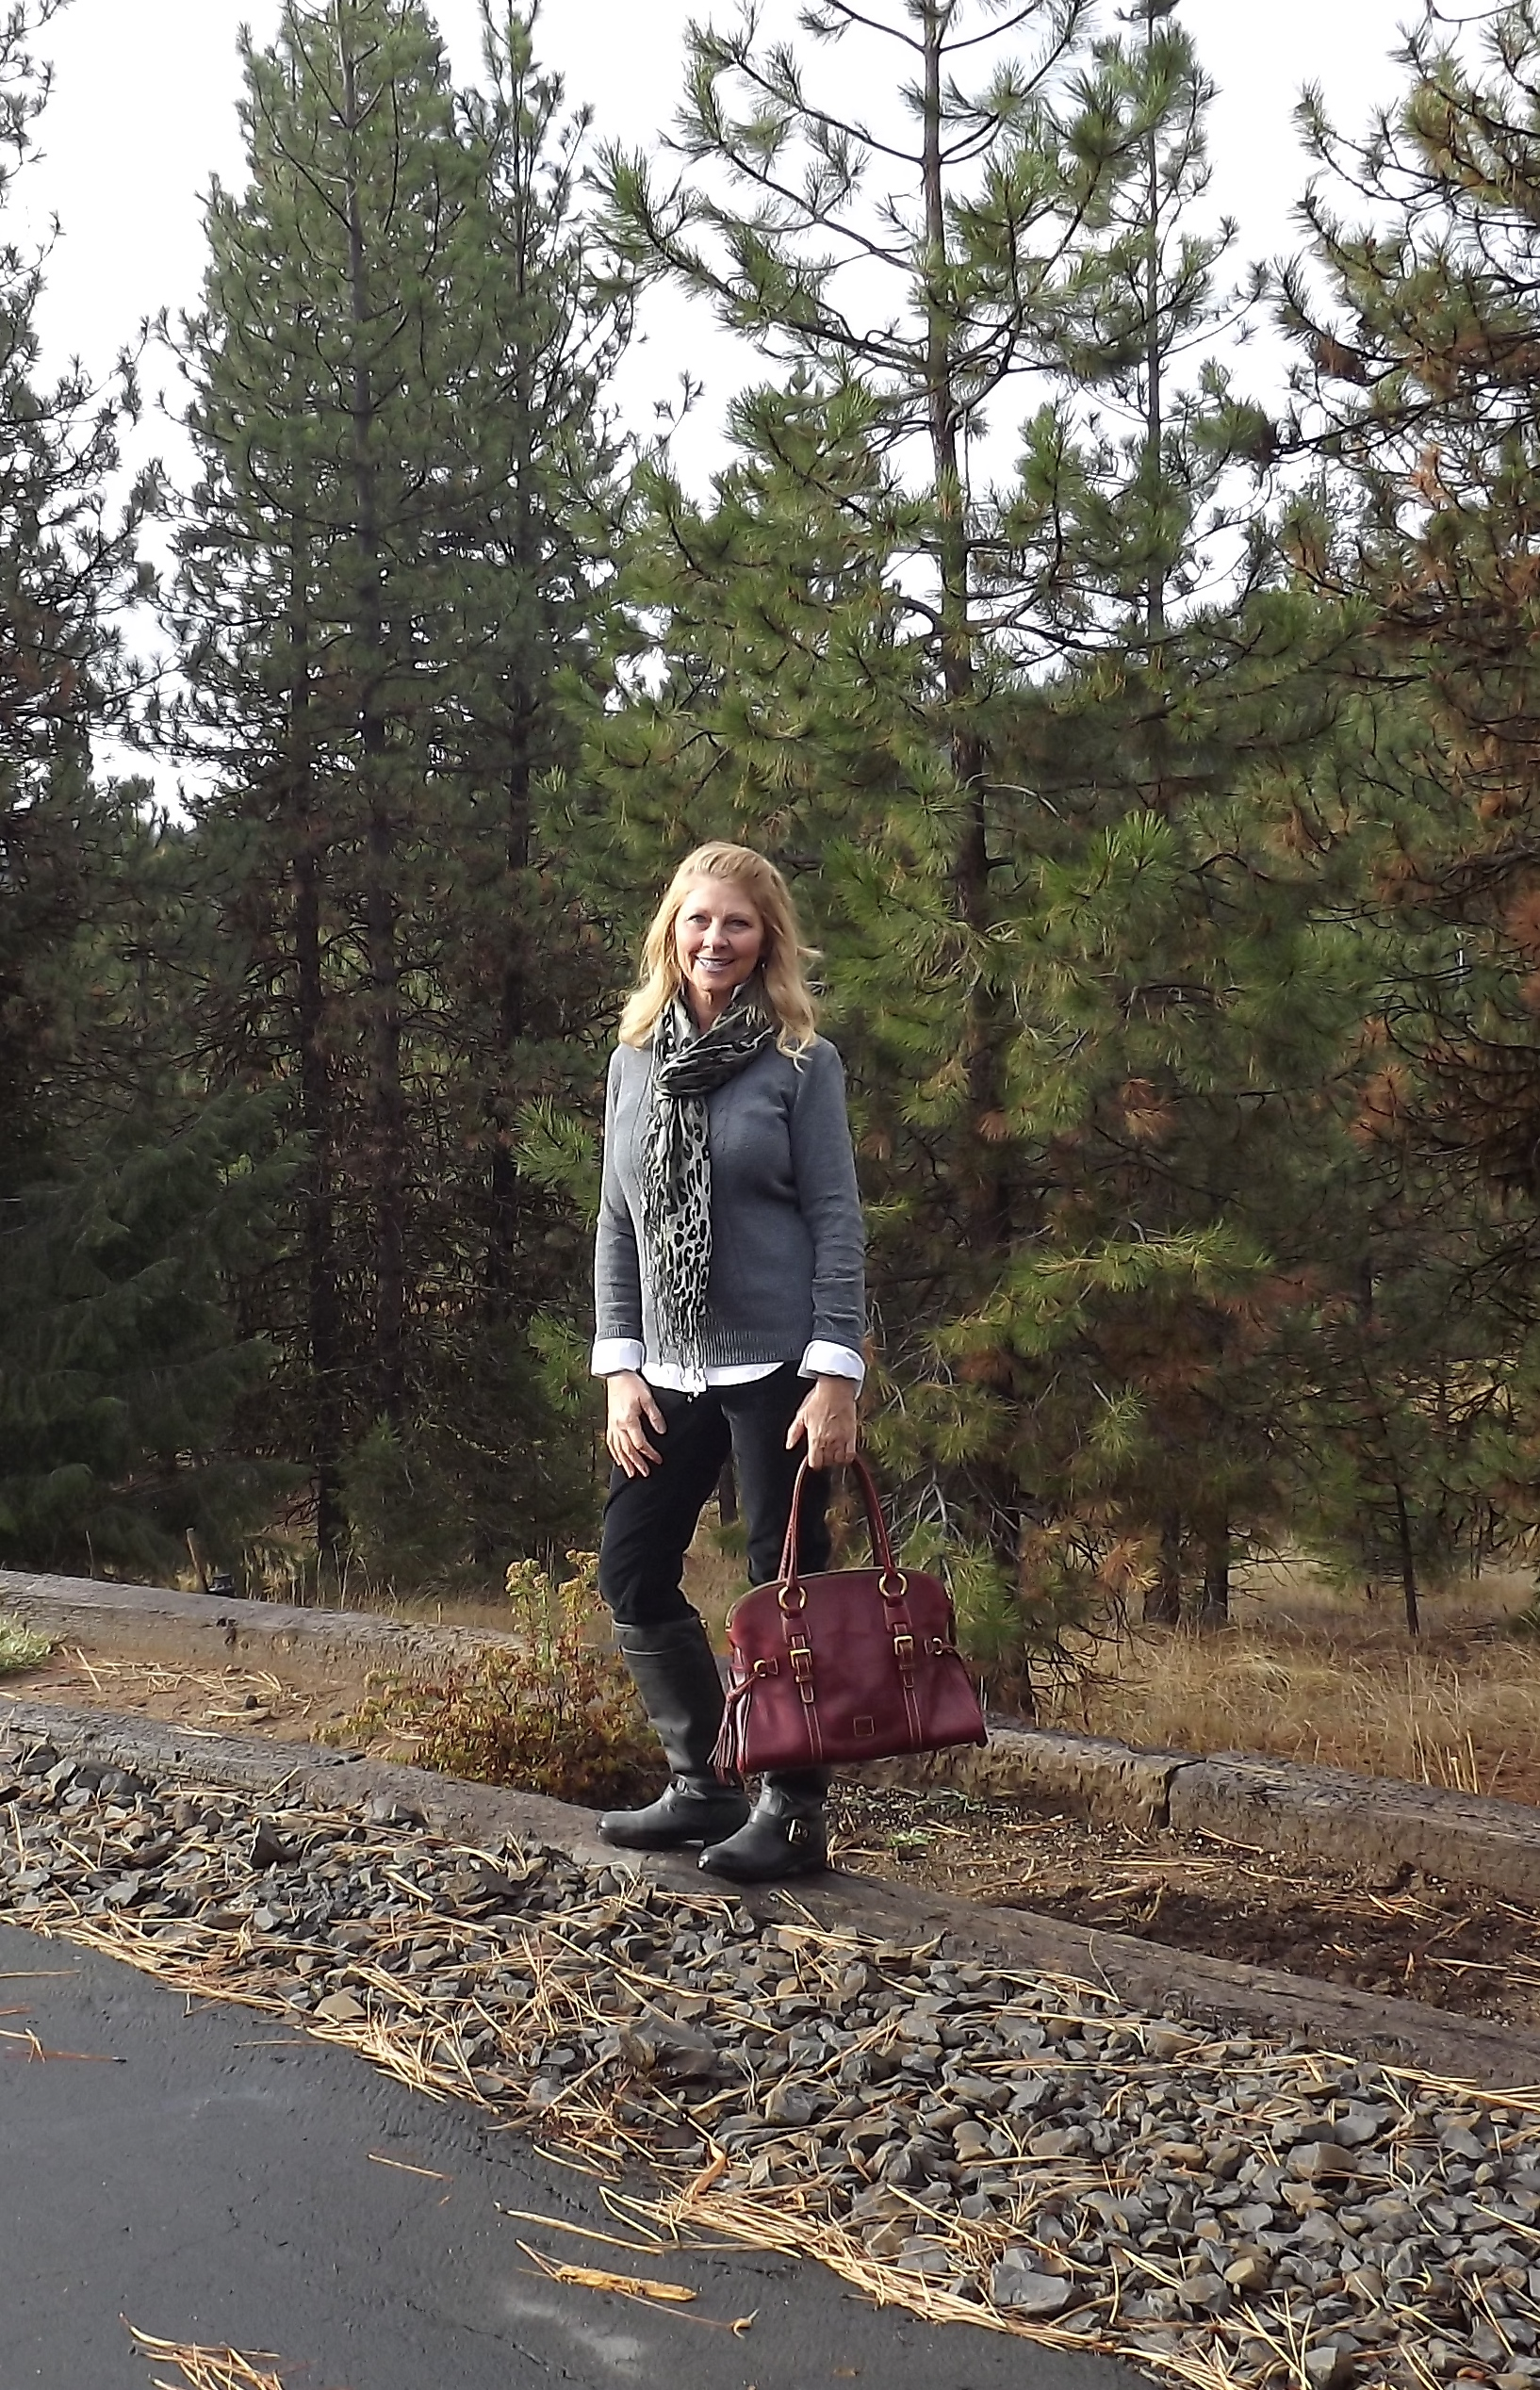 I've had this beautiful D&Bbag for a couple of years and it is perfect for the fall season and added a pop of color to my outfit.